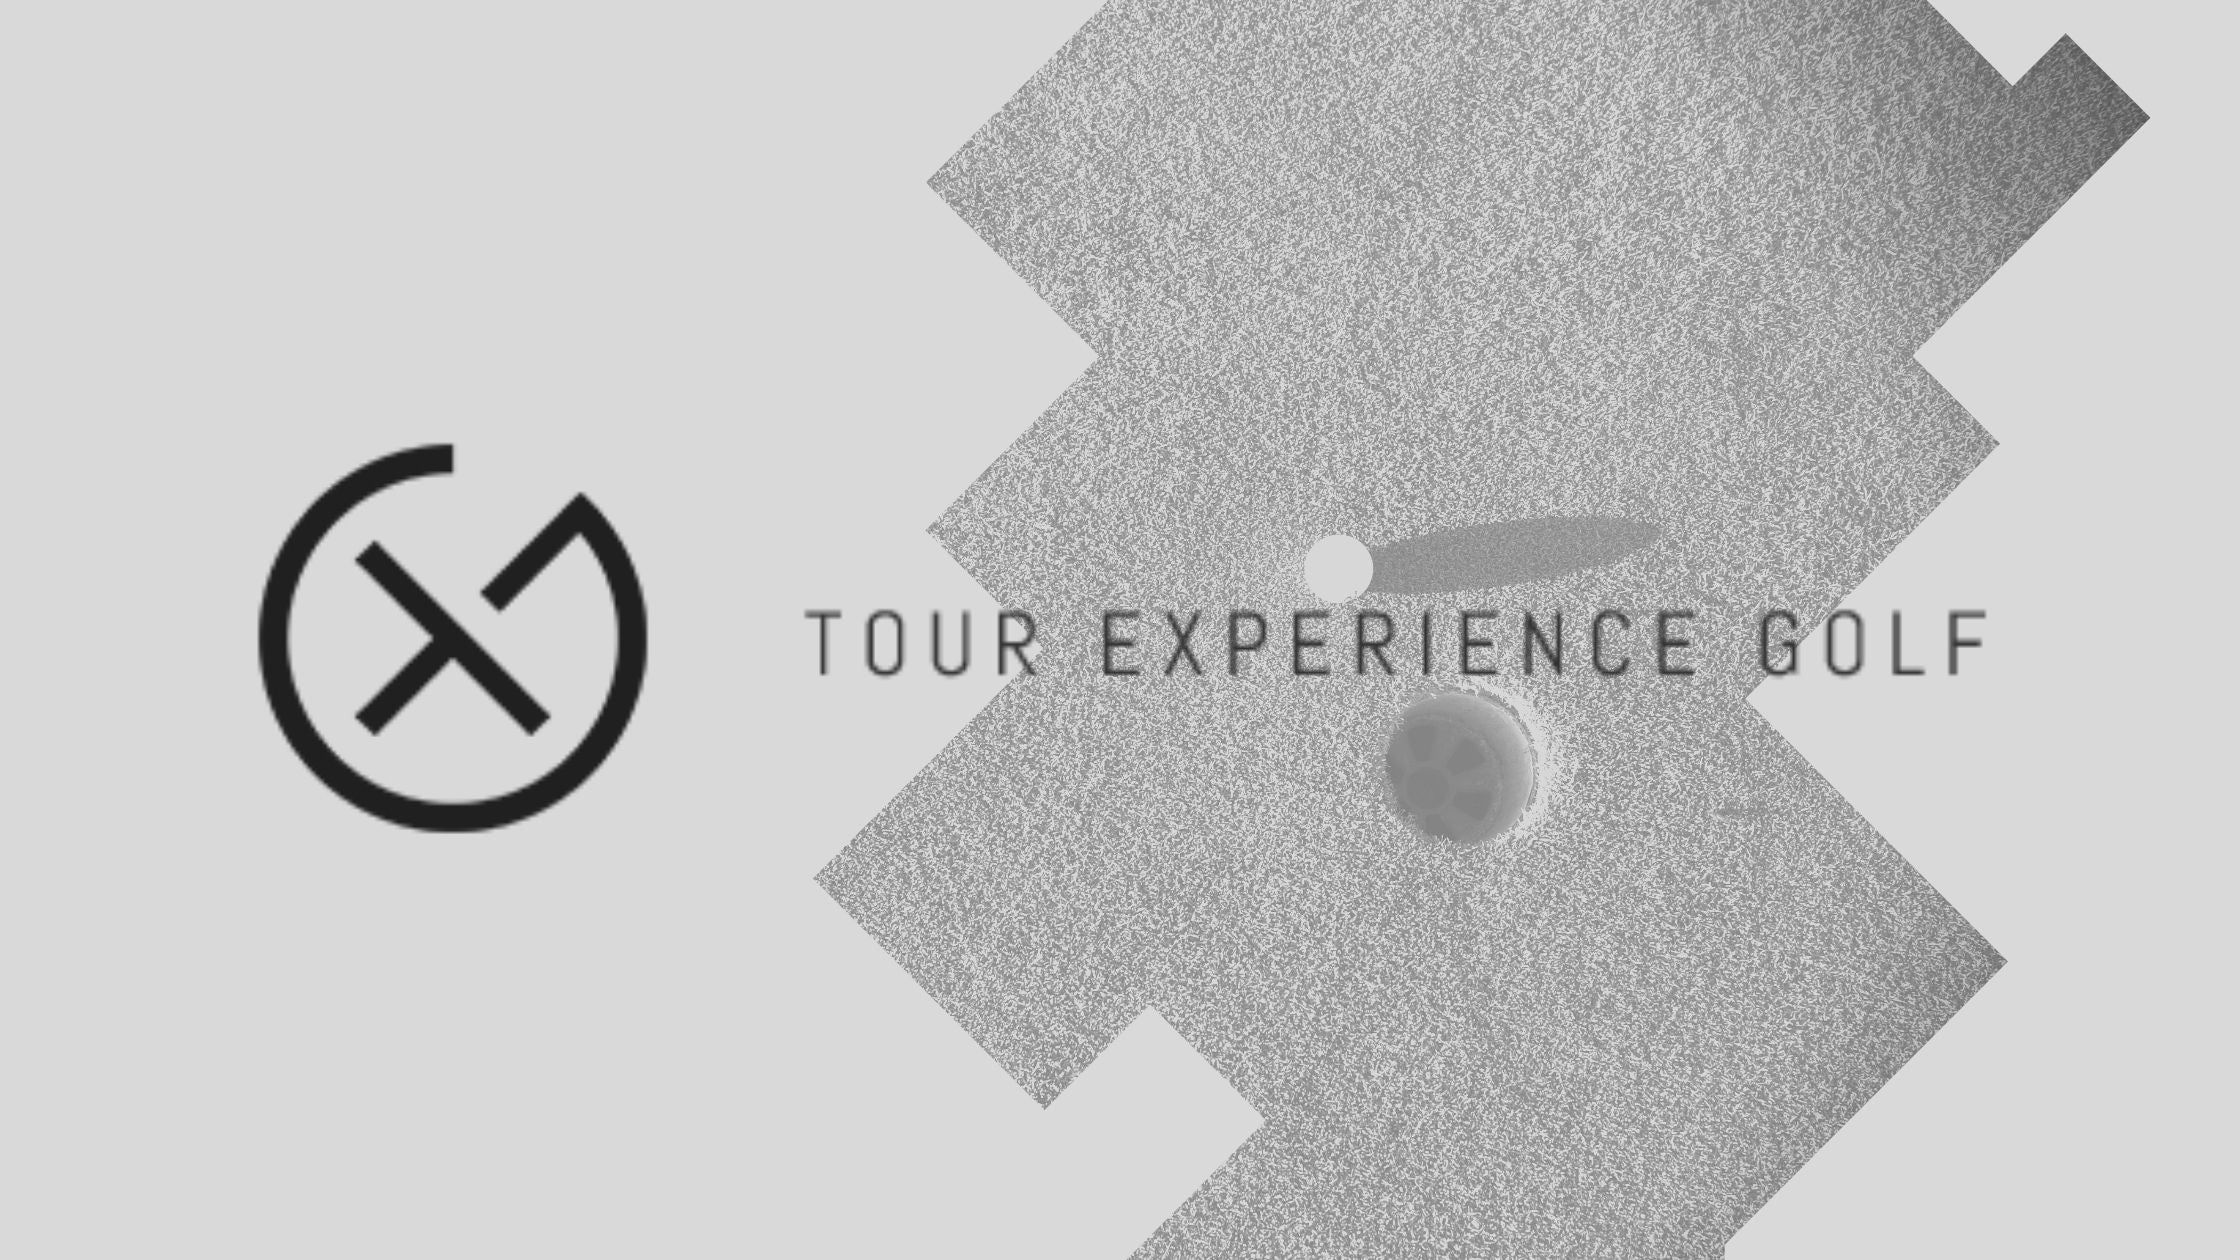 Tour Experience Golf & Arccos Golf